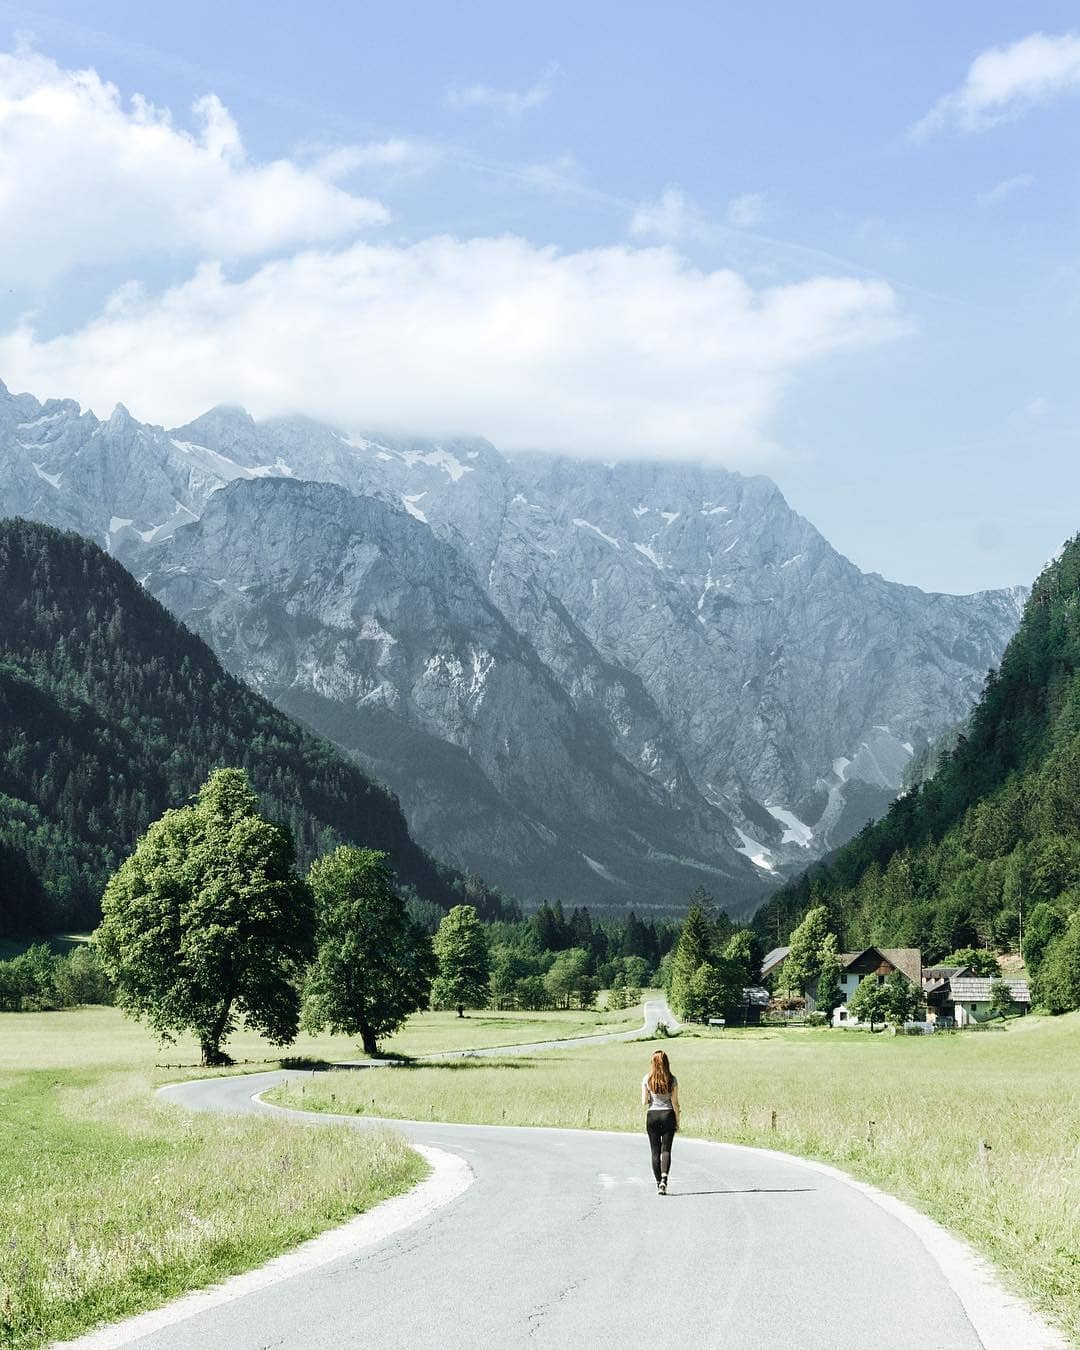 Logar Valley is a unique valley with breathtaking views of the mountains.  Thanks @ninapecovnik for sharing your photo with #ifeelsLOVEnia.